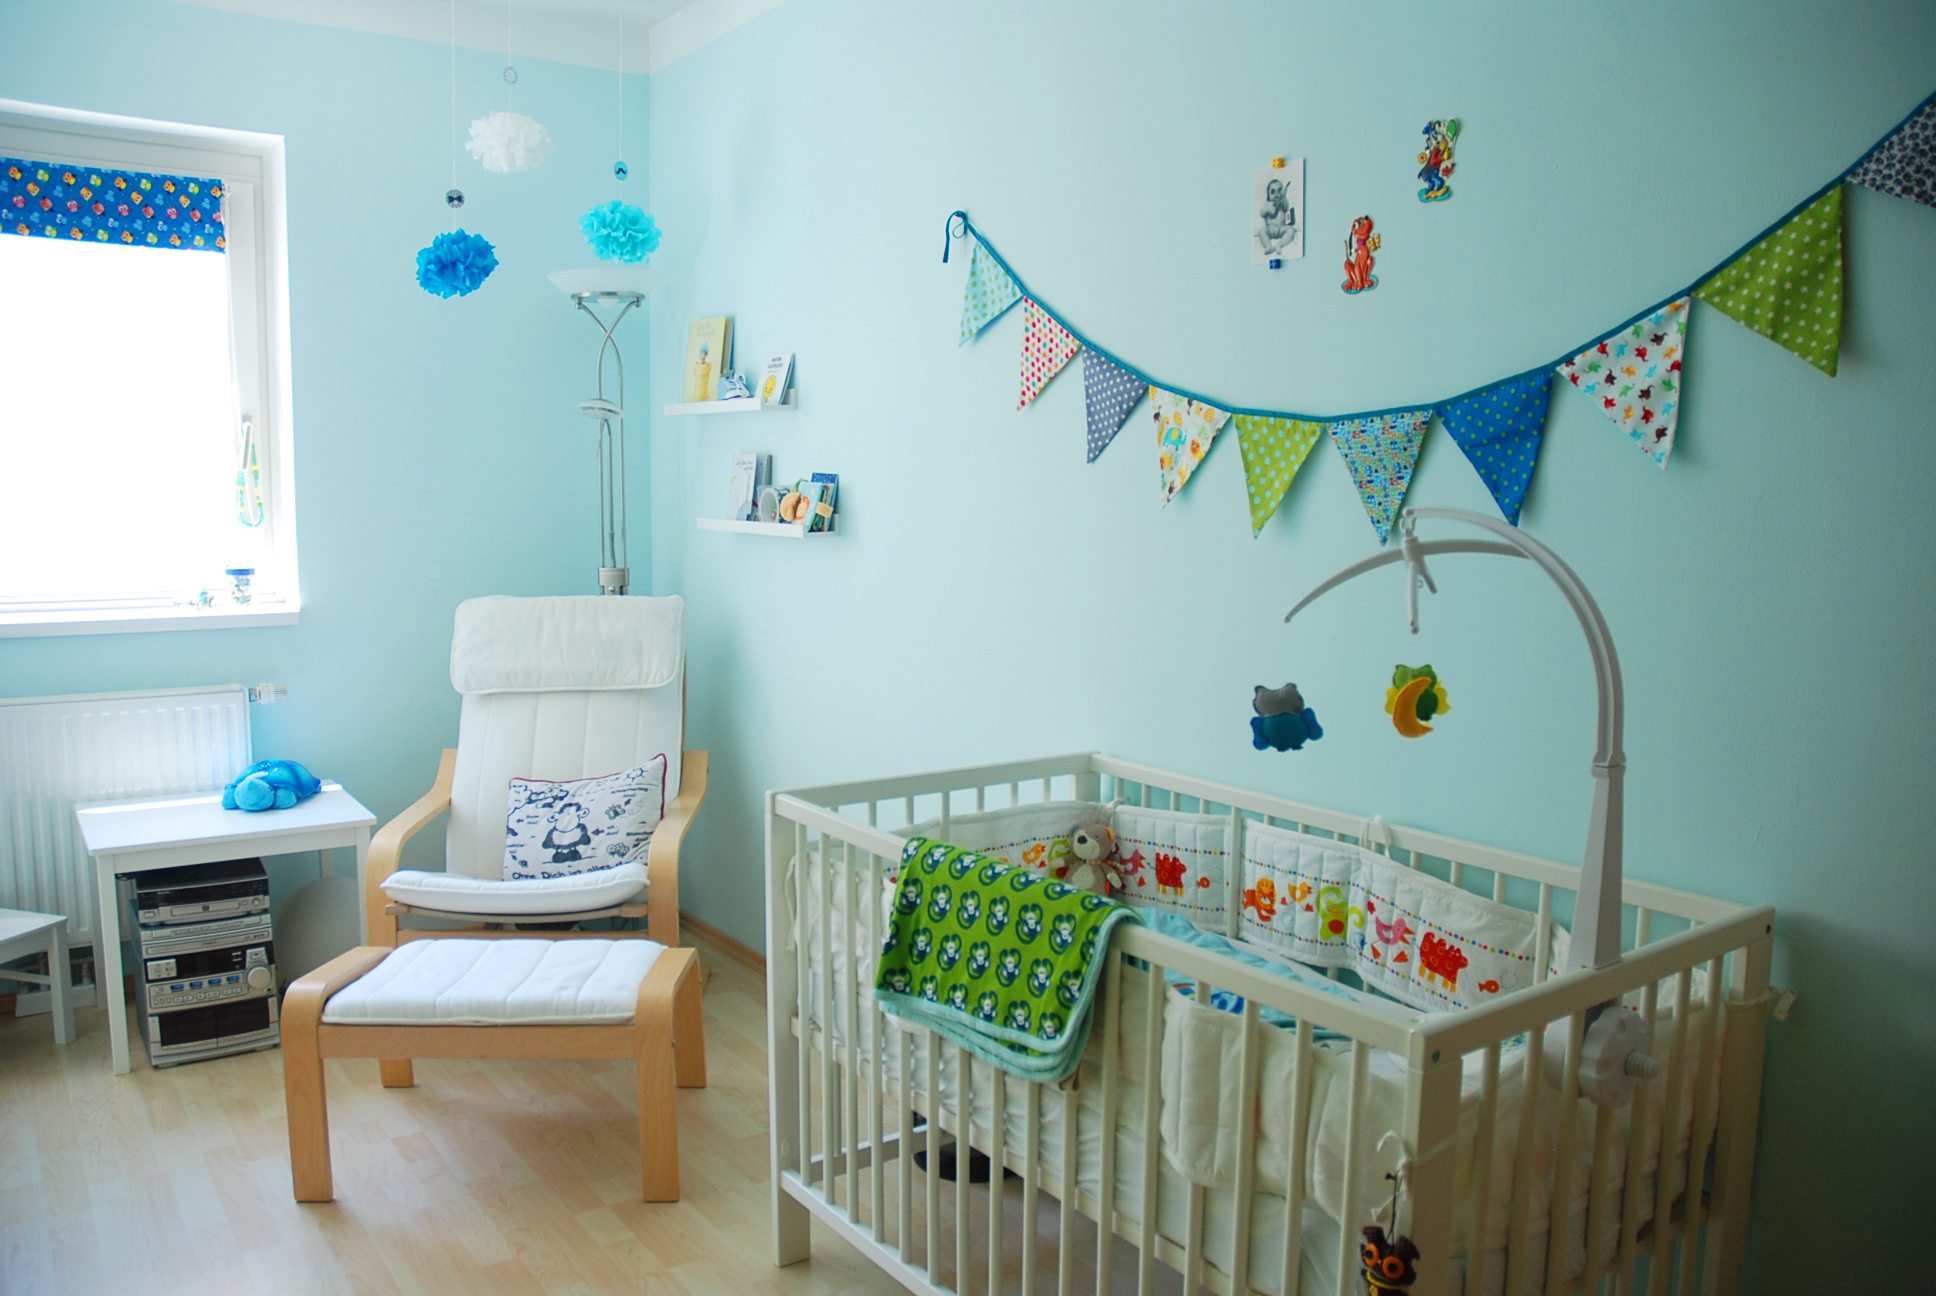 Baby Kinderzimmer Green And Blue Nursery With Dragon And Owl Details